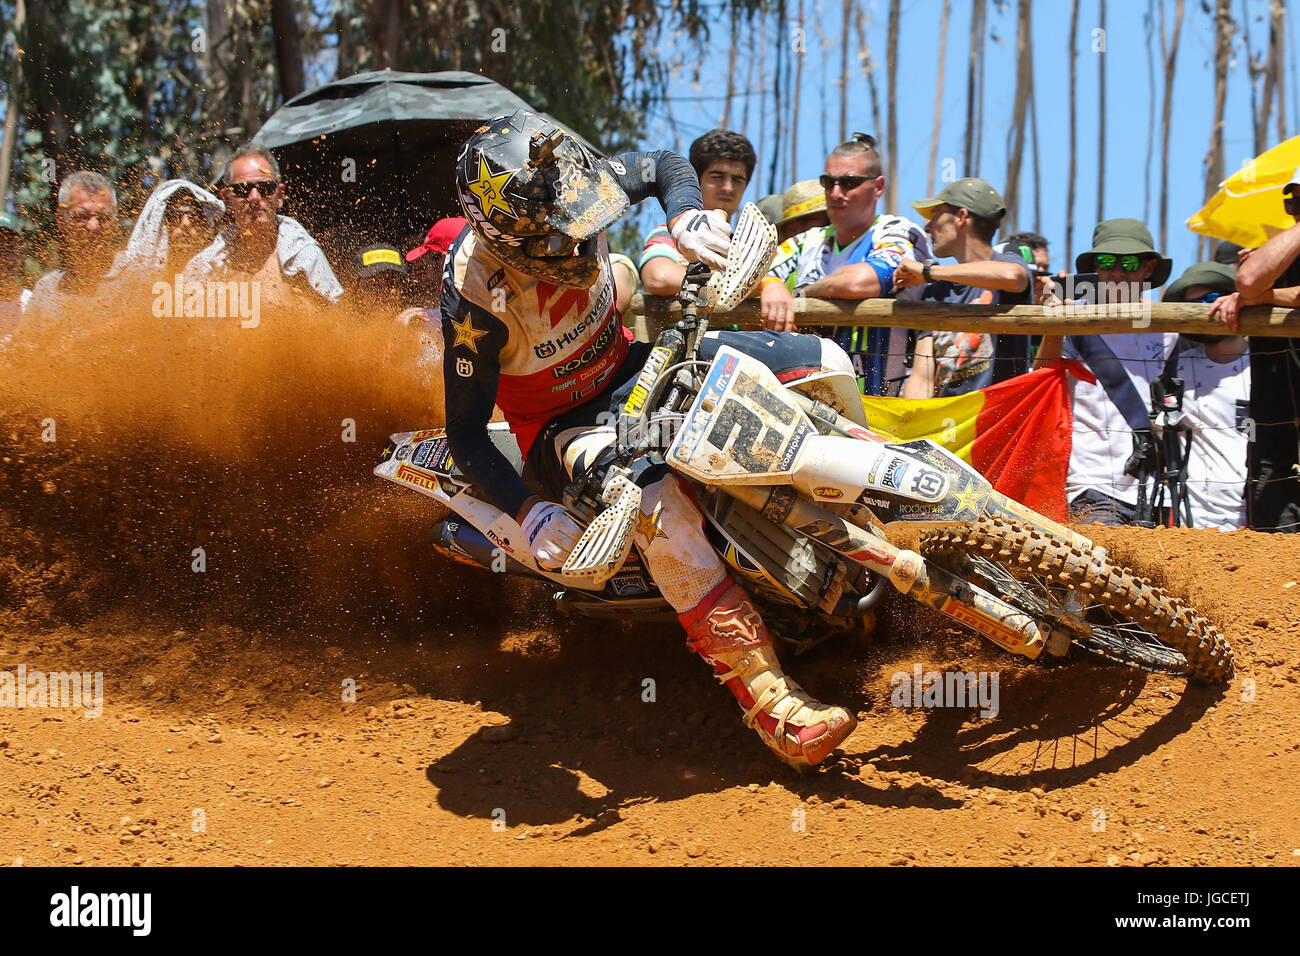 Gautier Paulin #21 (FRA) in Husqvarna of Rockstar Energy Husqvarna Factory Racing in action during the MXGP World - Stock Image